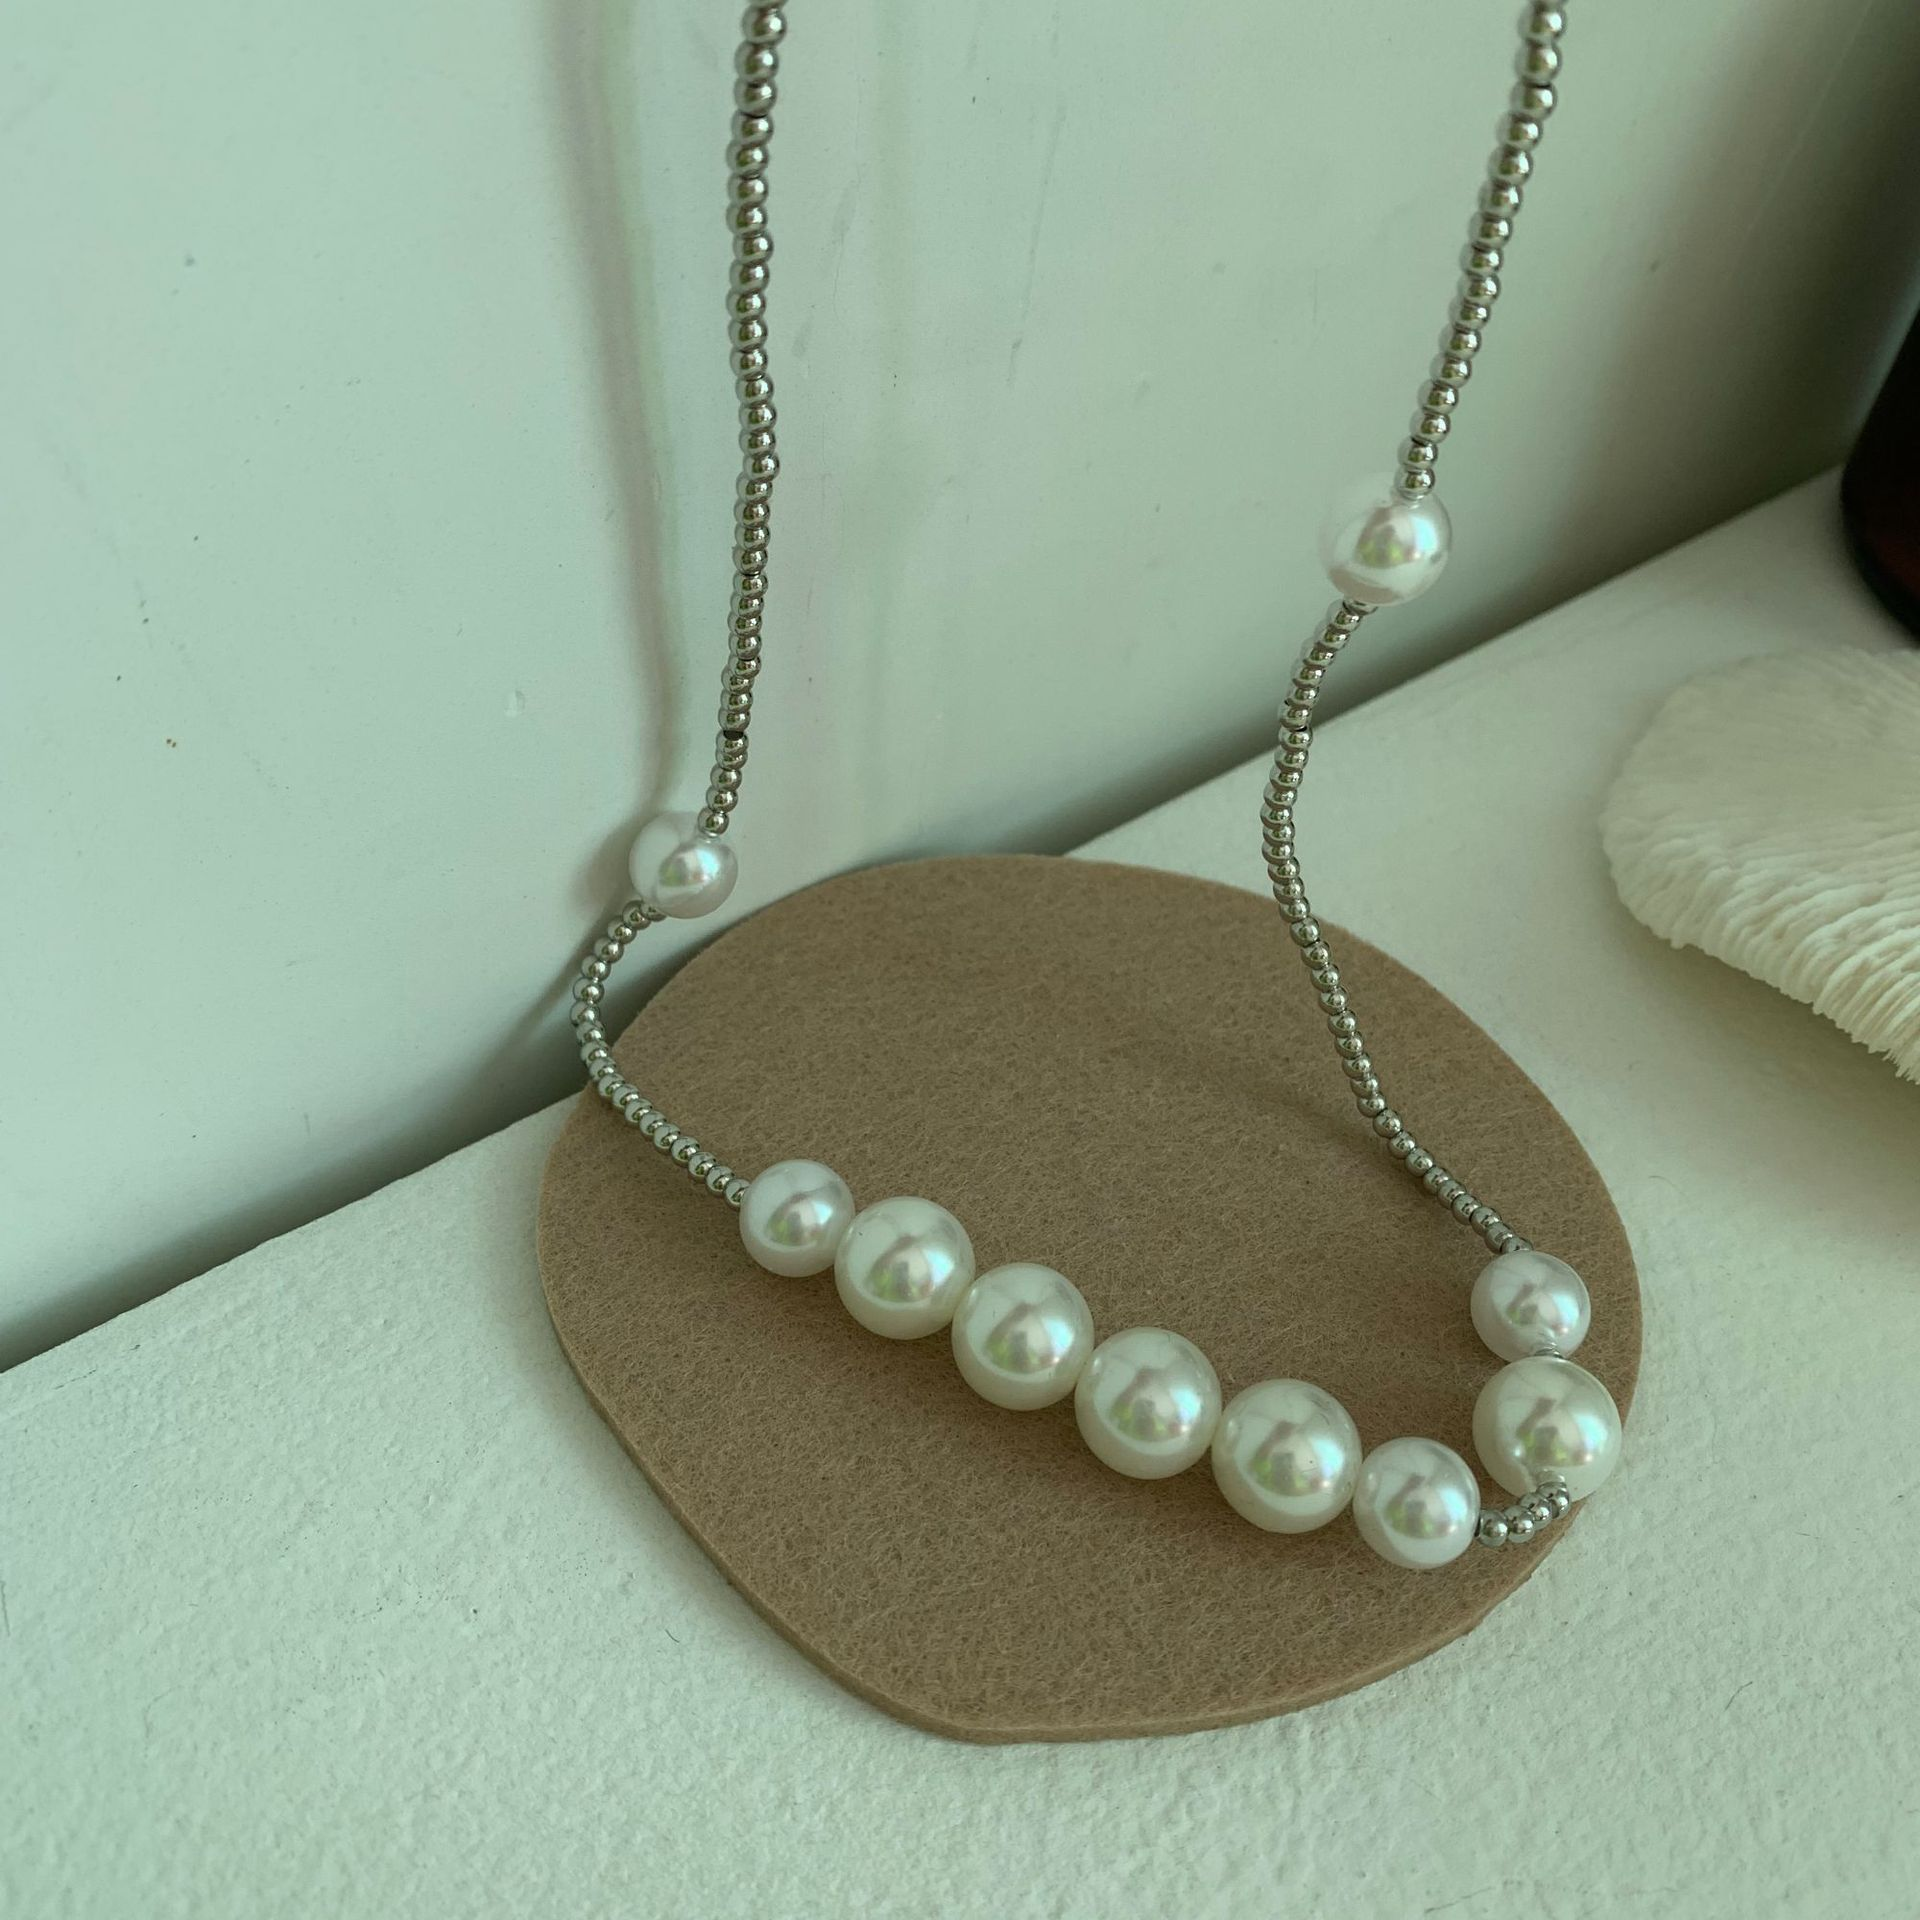 Trendy Pearl and Cube Necklace for Bad Boy Outfits